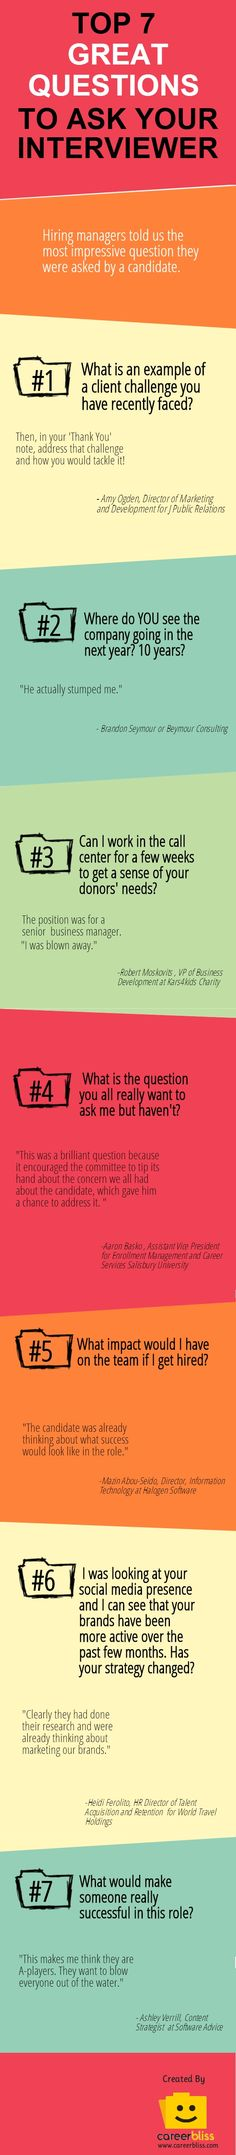 Great things to ask your interviewer - Imgur